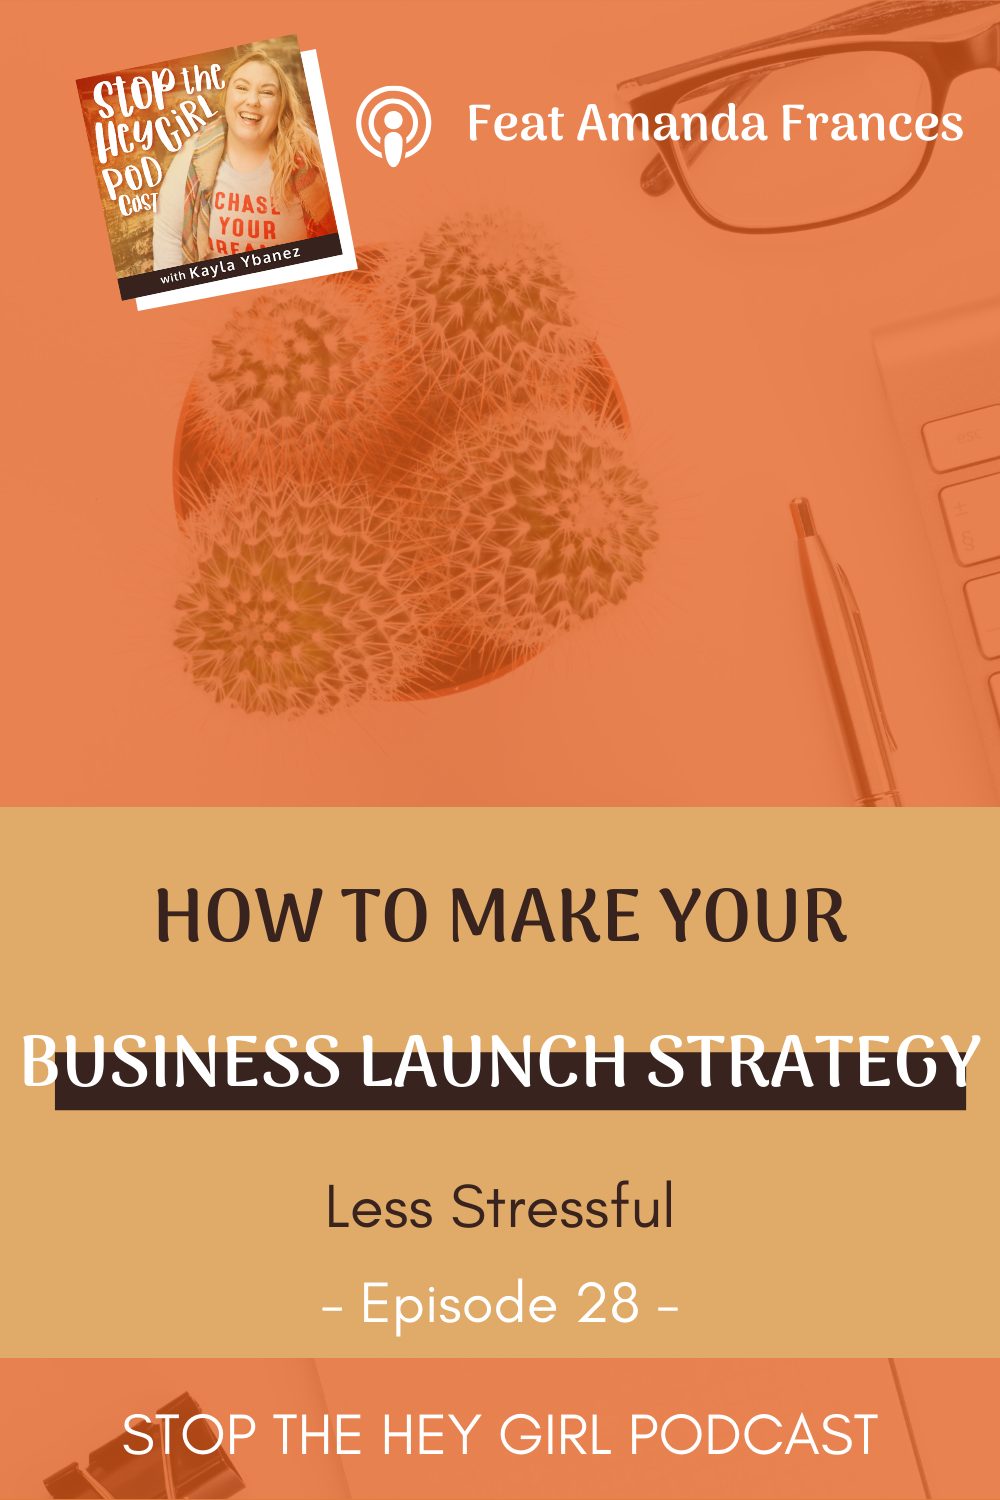 How to make your business launch strategy less stressful with Amanda Frances_Kayla Ybanez9